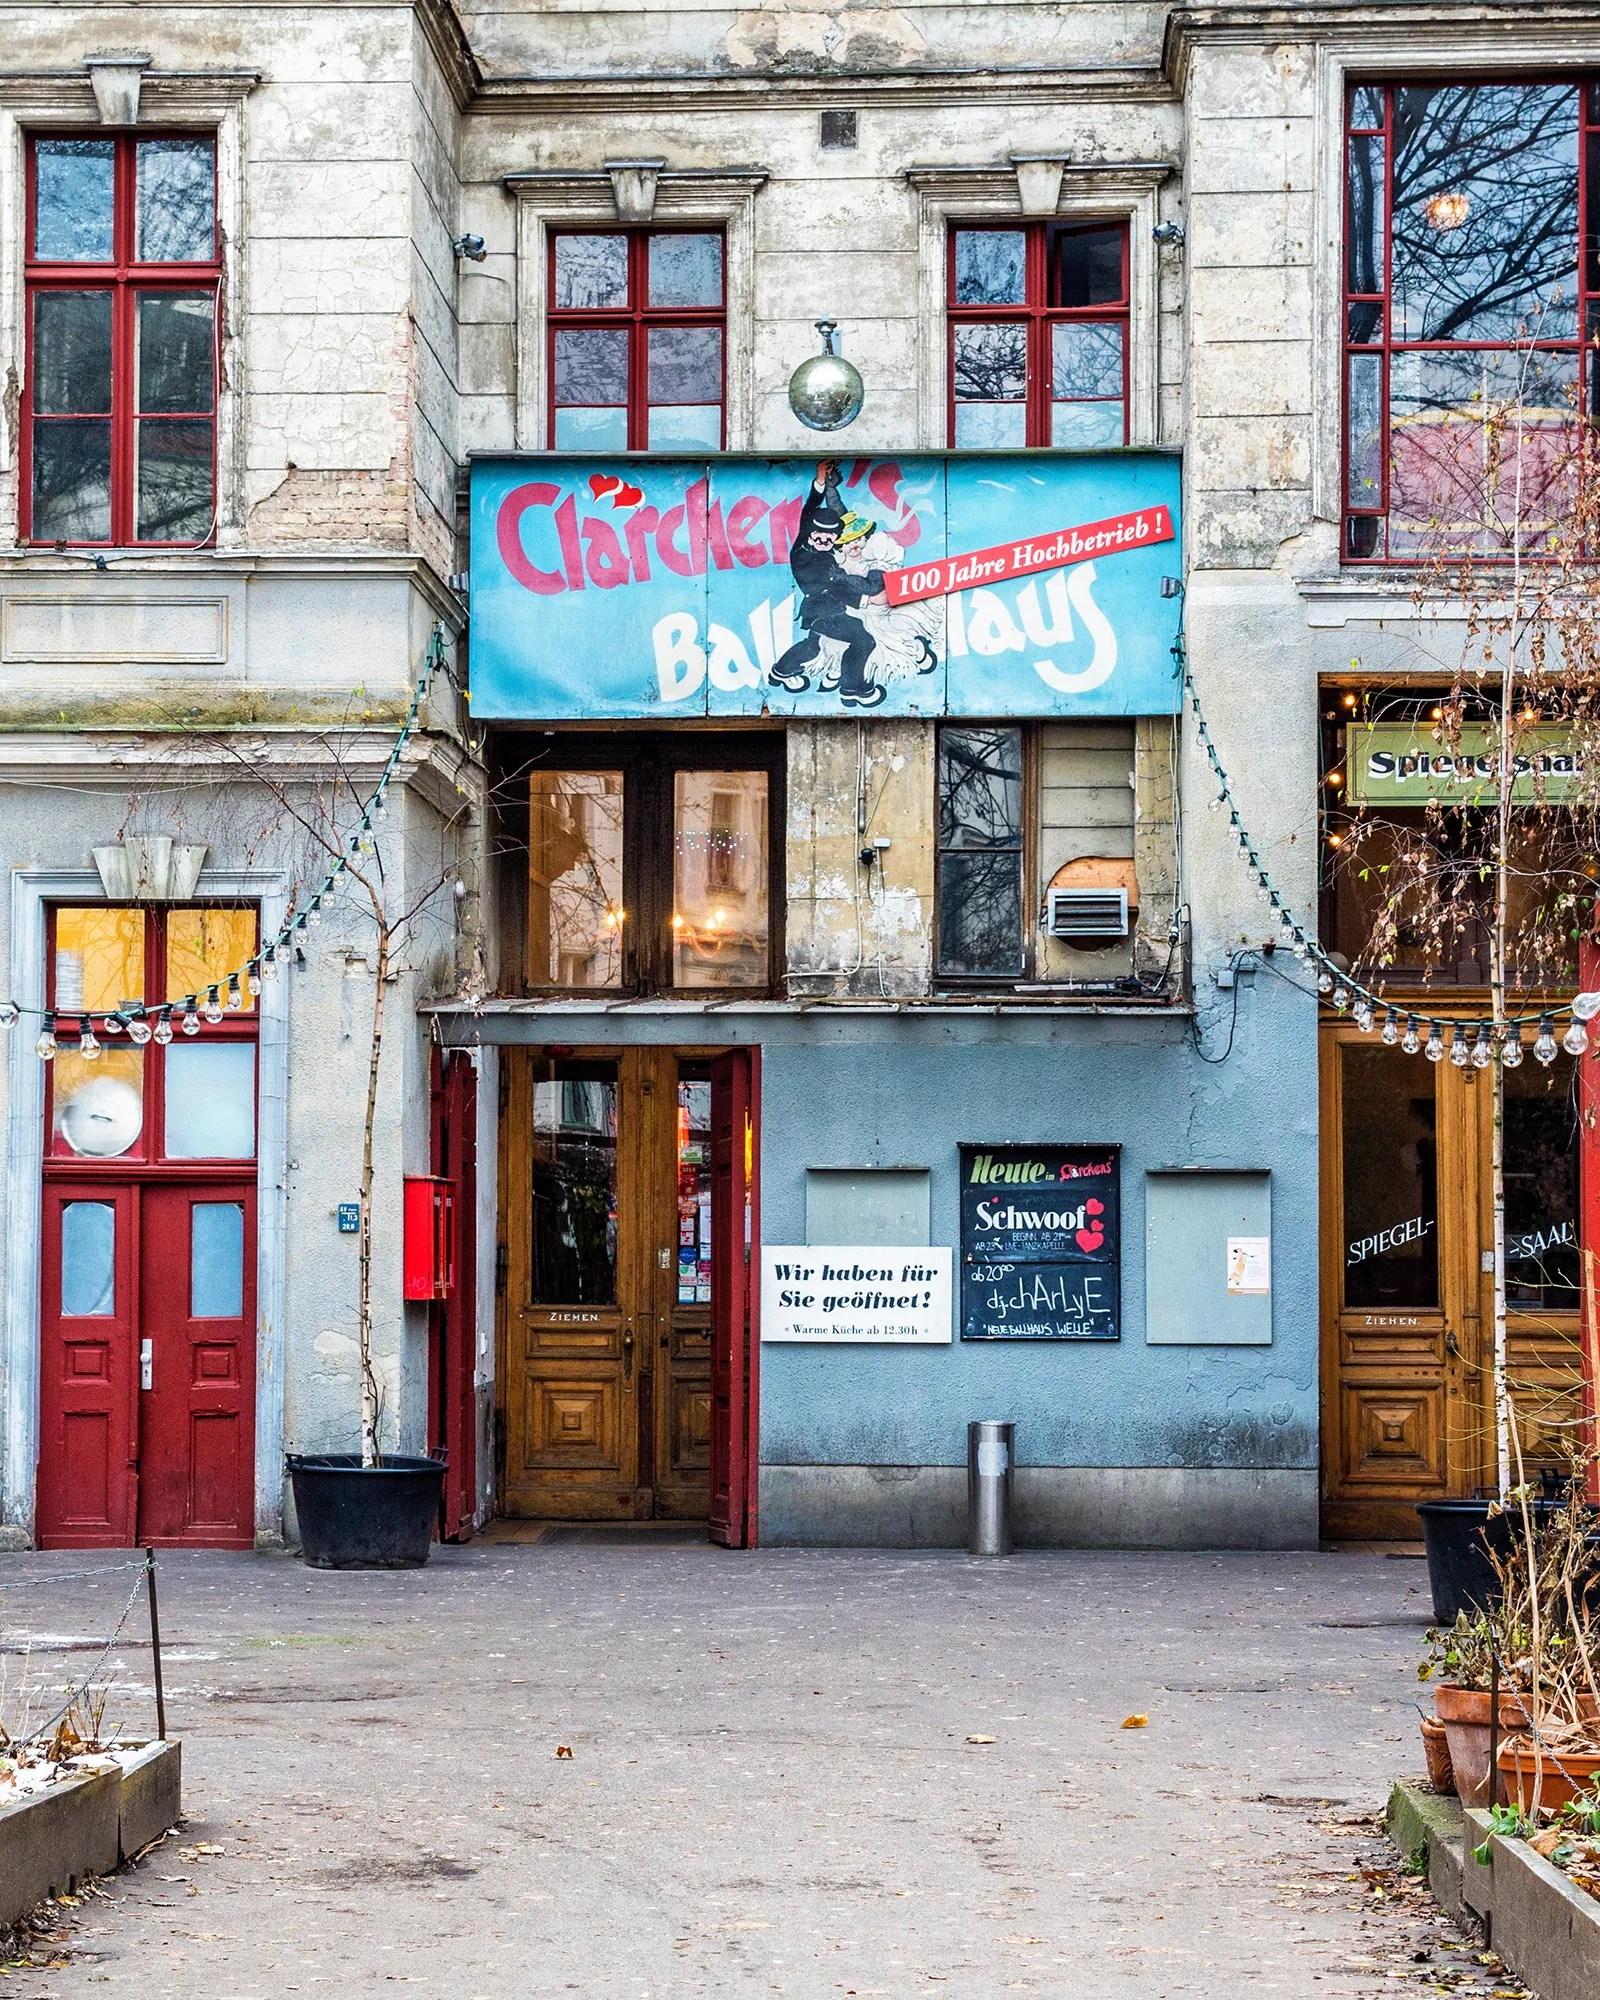 Ukrainische Küche Berlin From Burlesque To Bauhaus Here S Where To Find The Roaring 20s